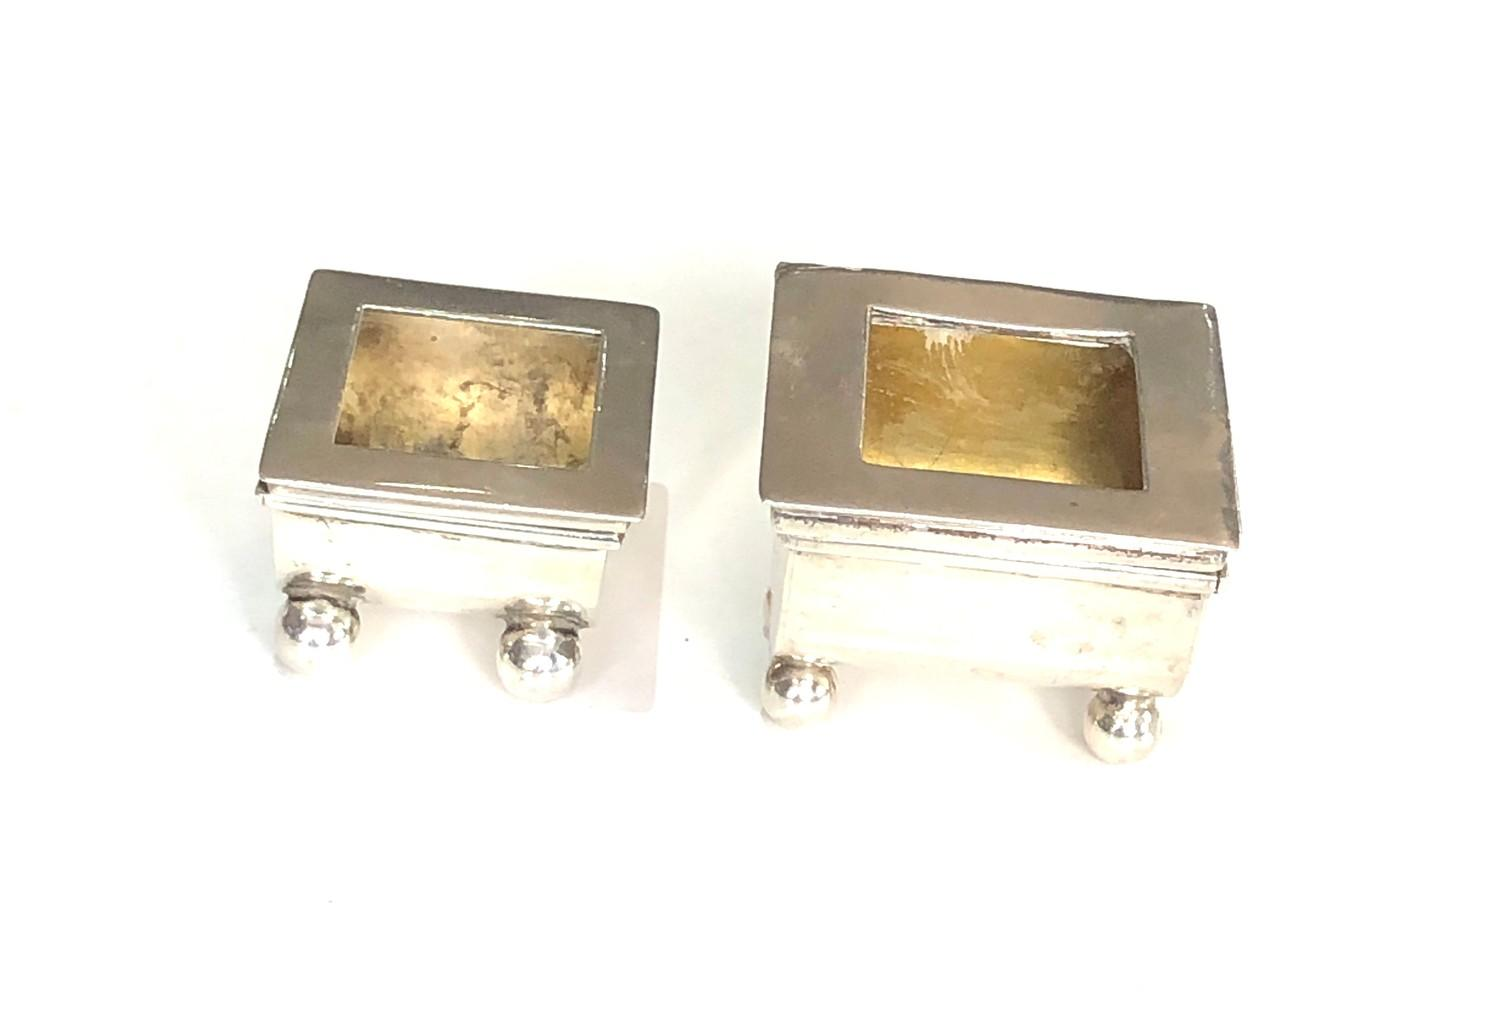 2 antique Silver Stamp Cases hinged lids both with Birmingham silver hallmarks please see images for - Image 2 of 5